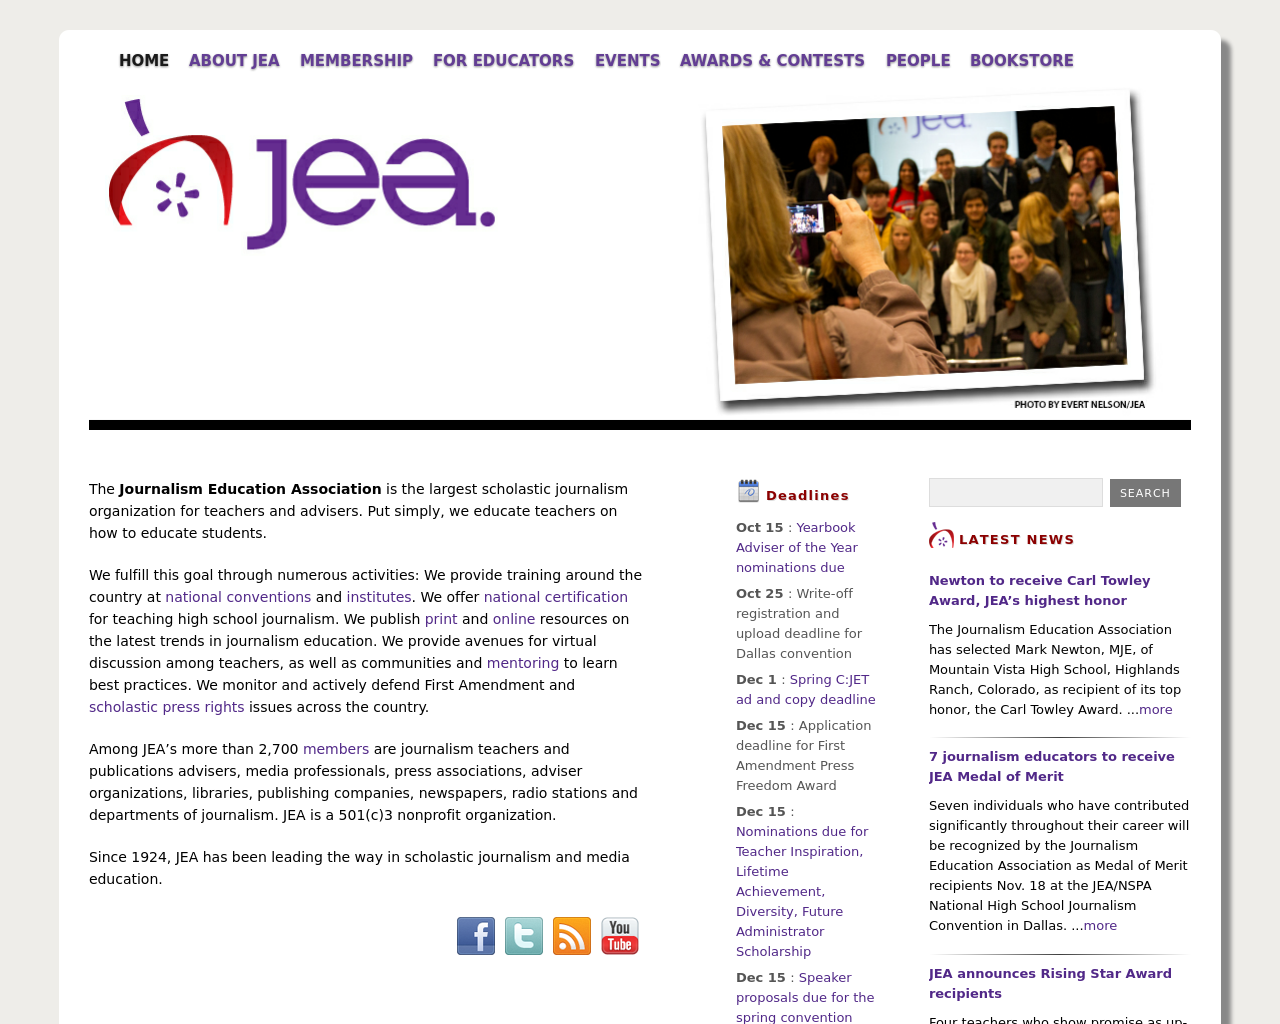 Jea-Advertising-Reviews-Pricing